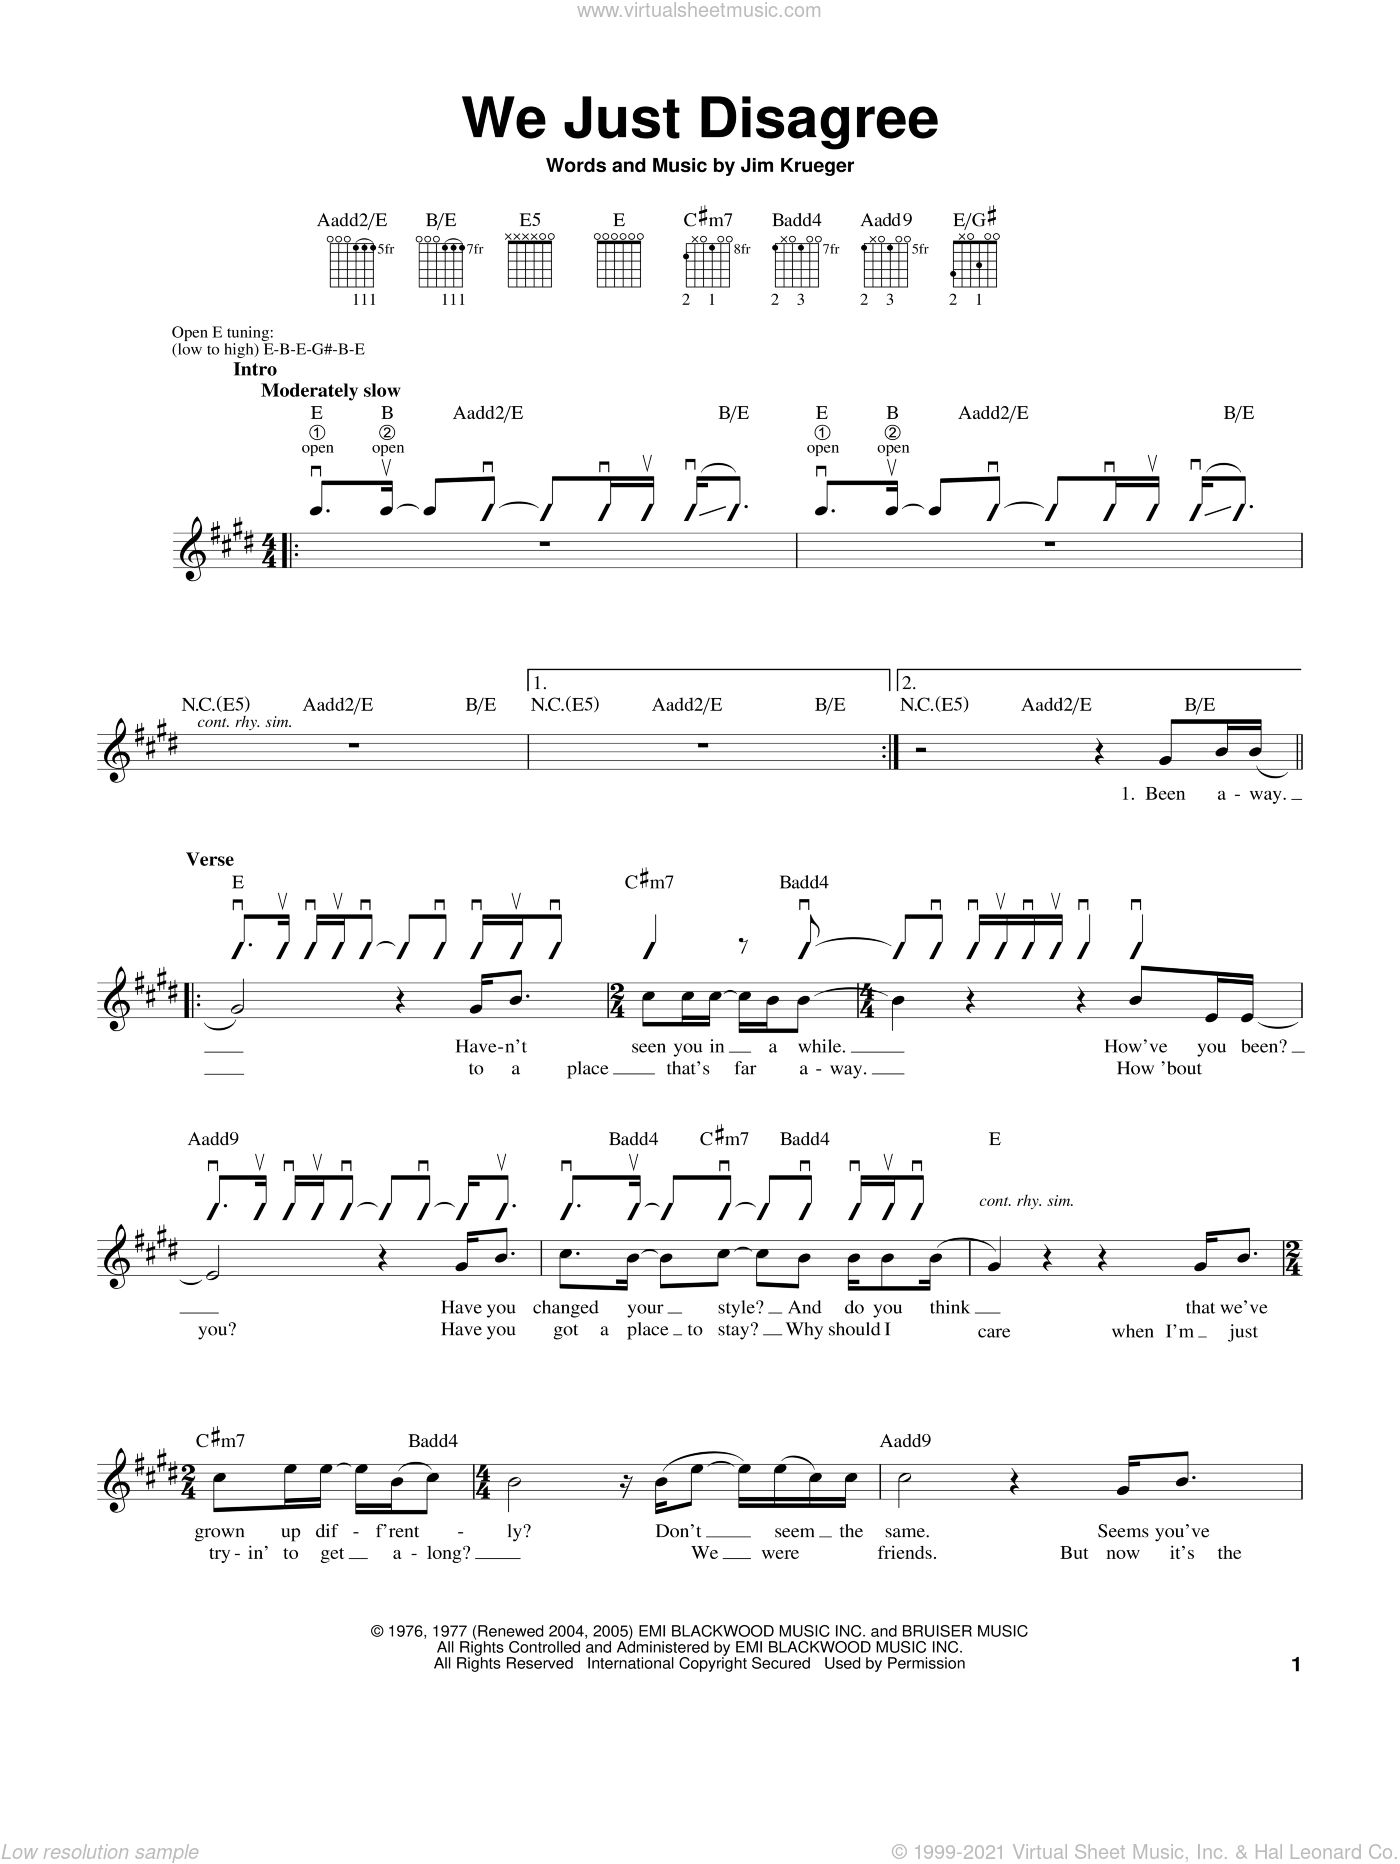 We Just Disagree sheet music for guitar solo (chords) by Jim Krueger